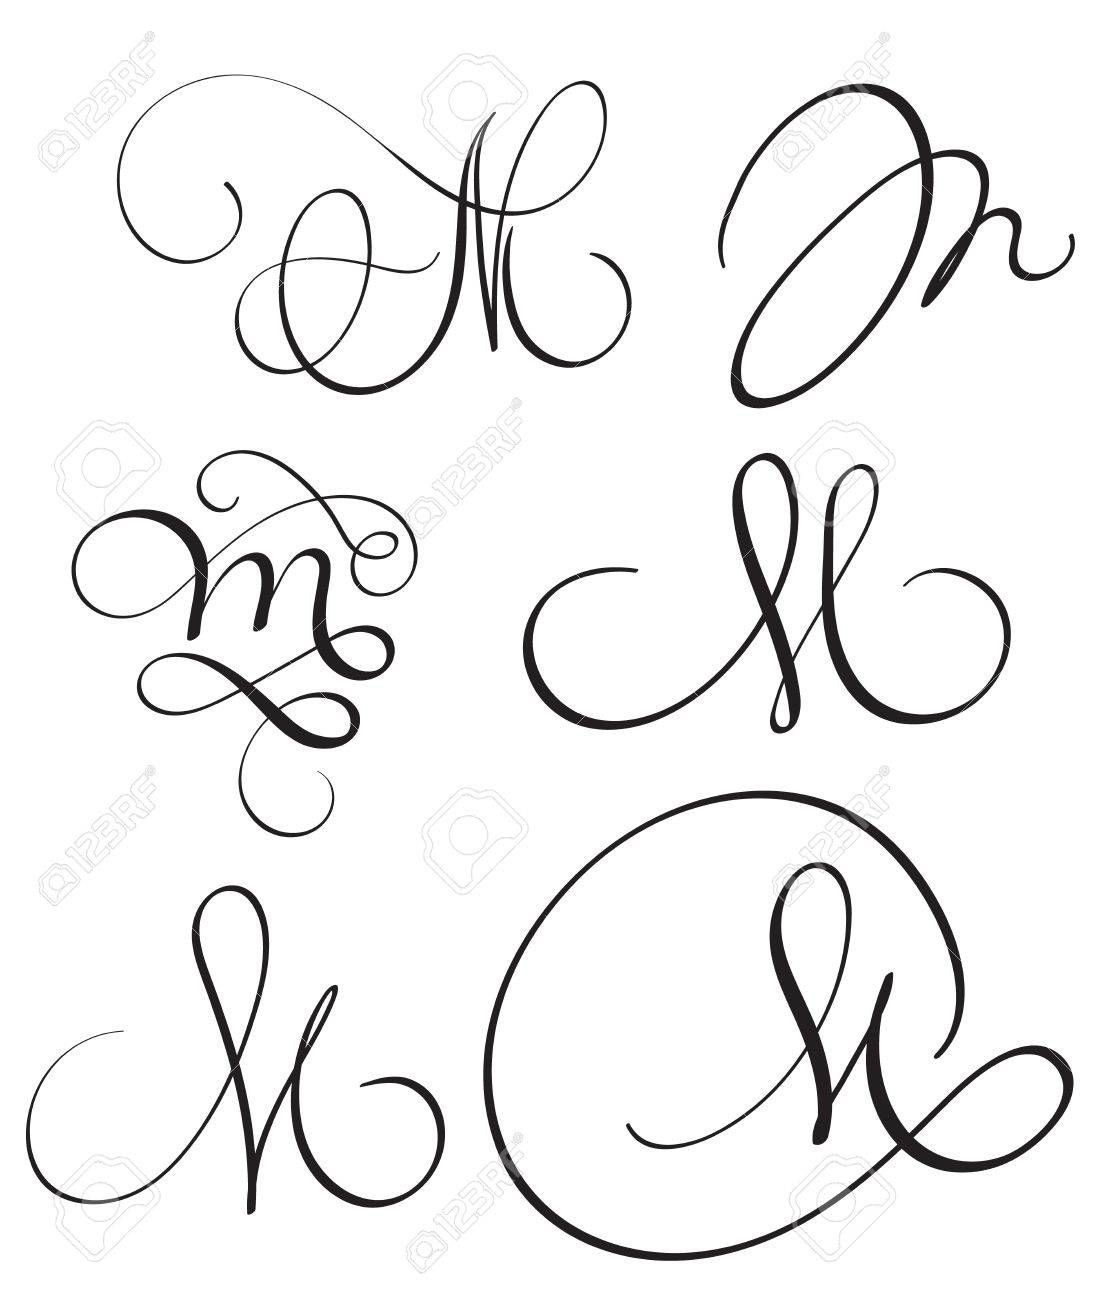 Set Of Art Calligraphy Letter M With Flourish Of Vintage Decorative Hand Lettering Alphabet Lettering Alphabet Calligraphy Letters